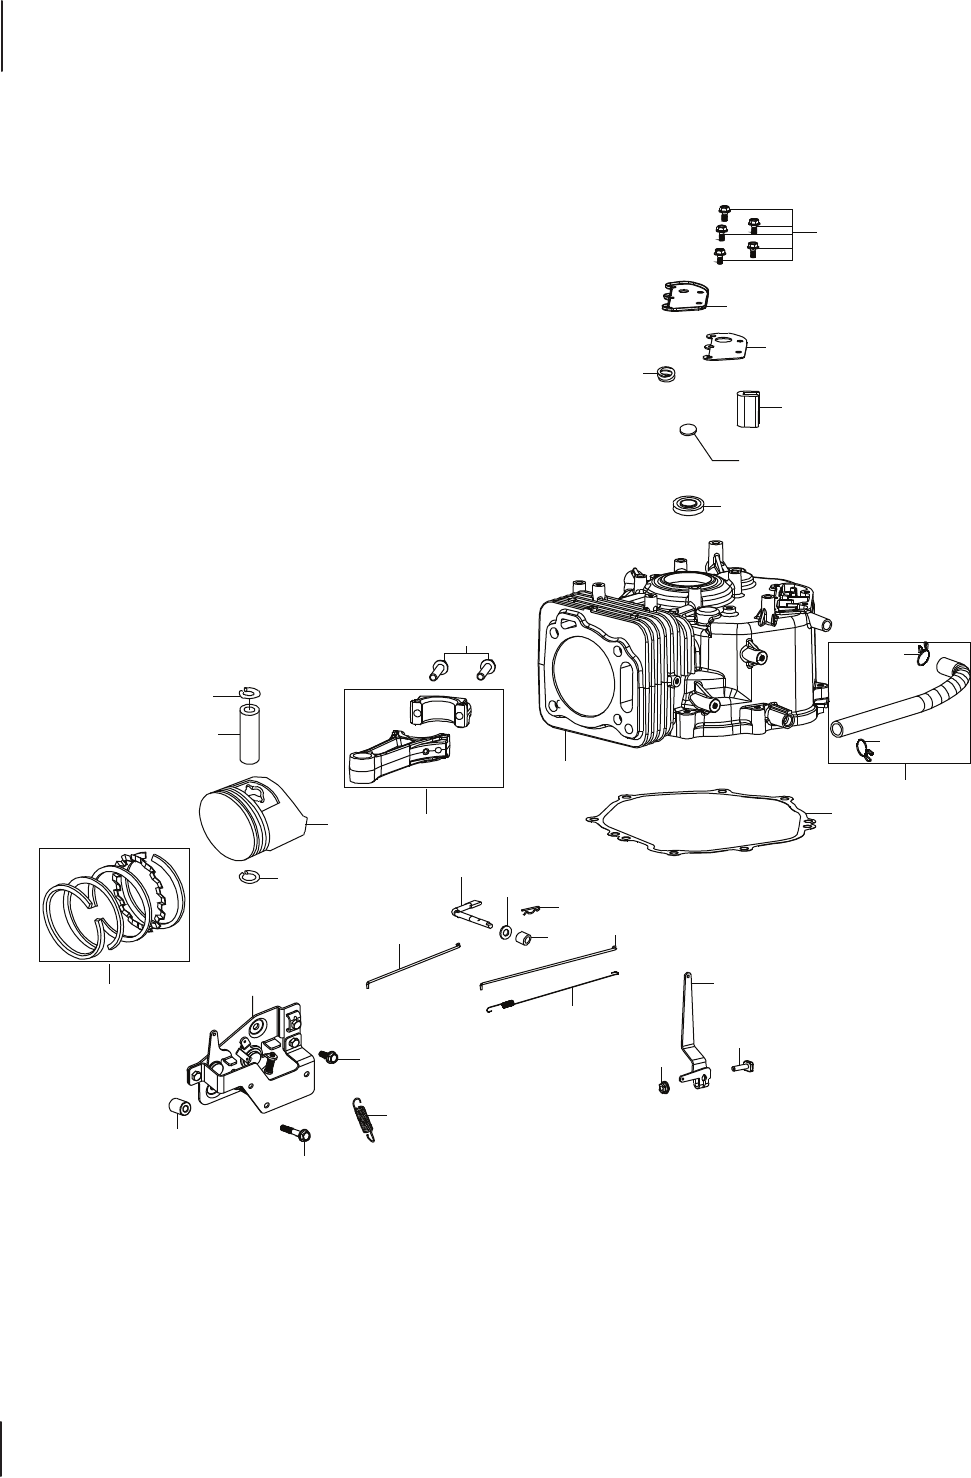 Page 22 of Cub Cadet Lawn Mower CC30 User Guide